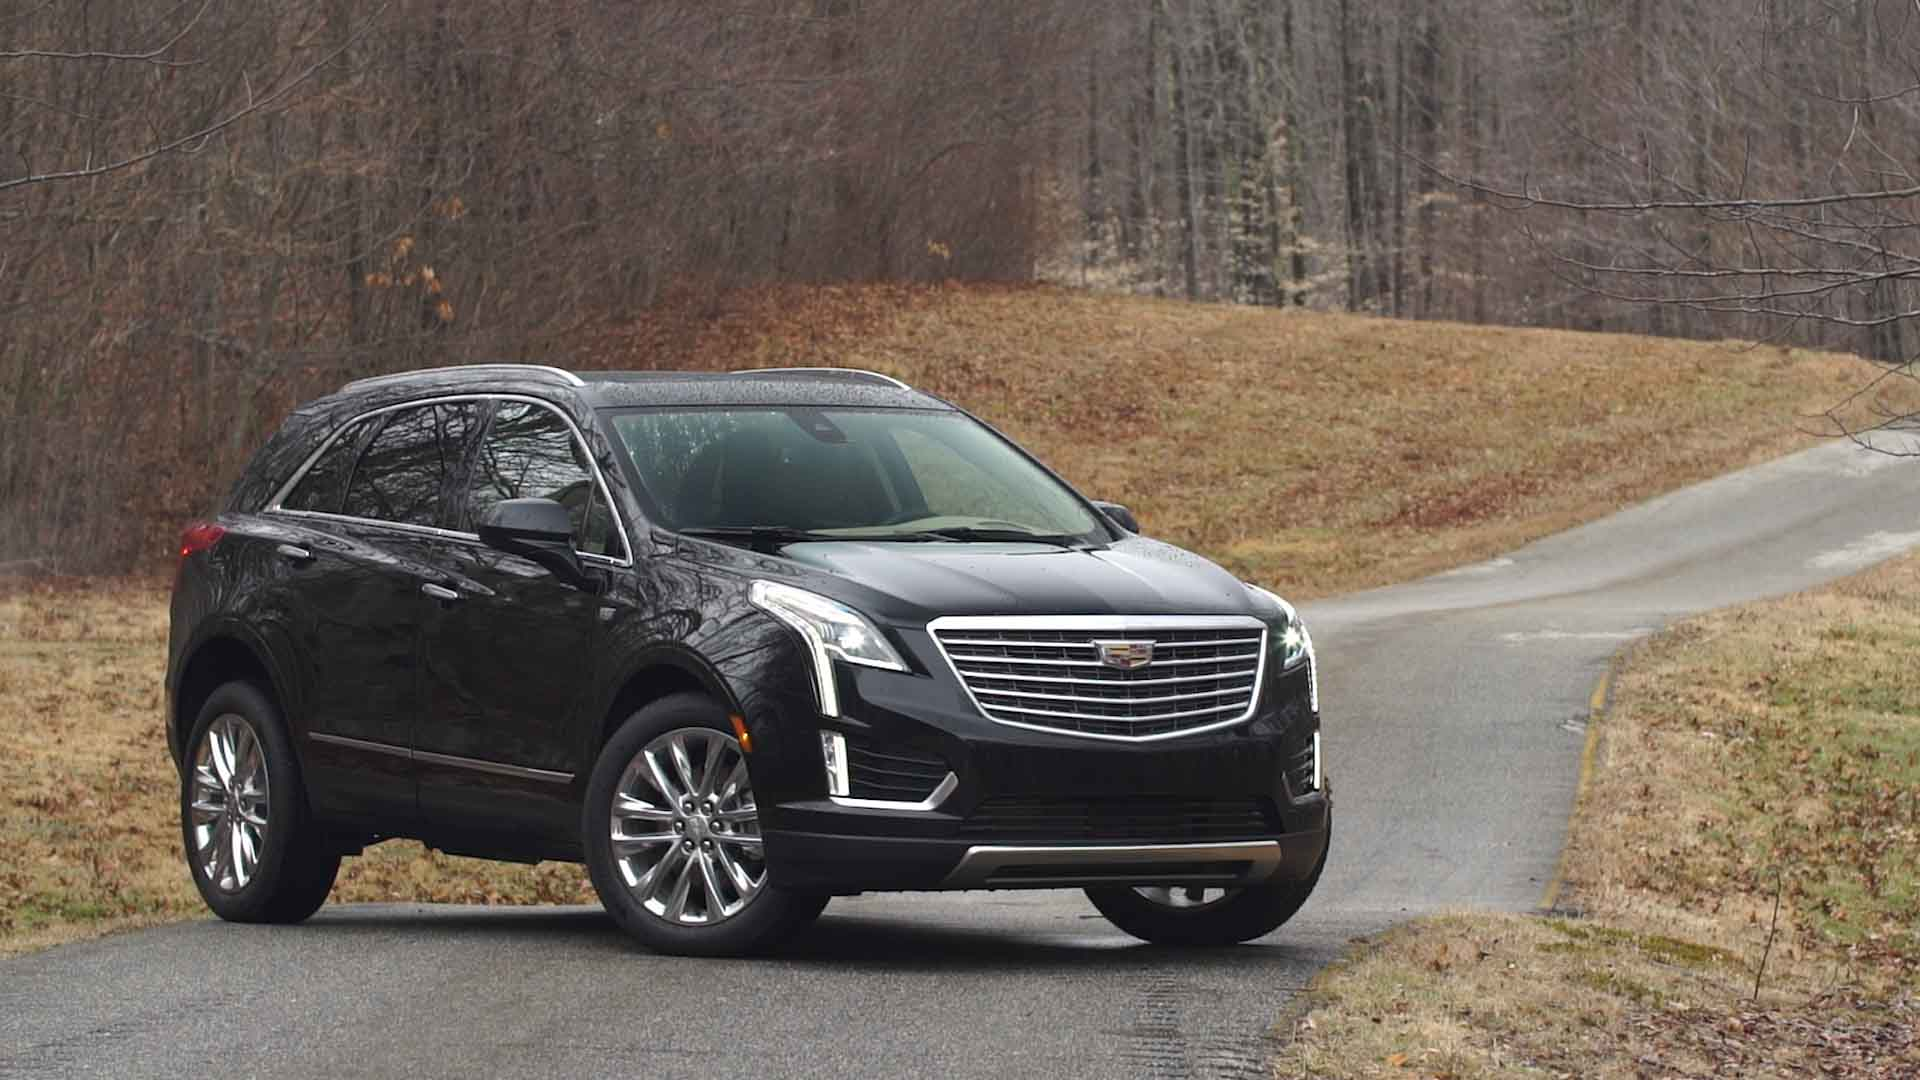 2017 Cadillac XT5 Ready for Luxury SUV Fight Consumer Reports